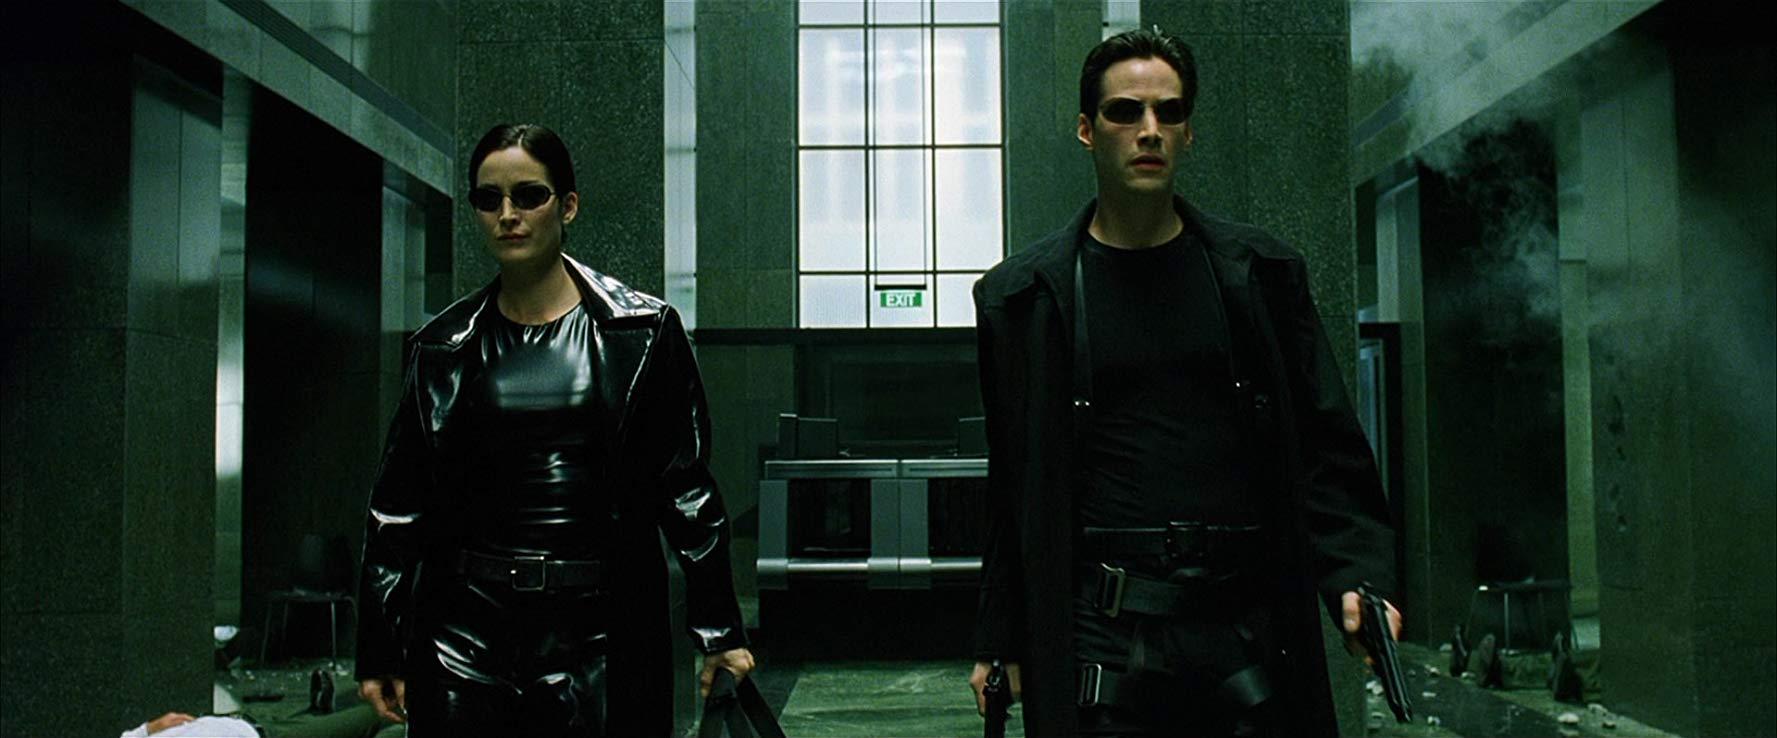 The Matrix 4               The Matrix 4            The Matrix 4